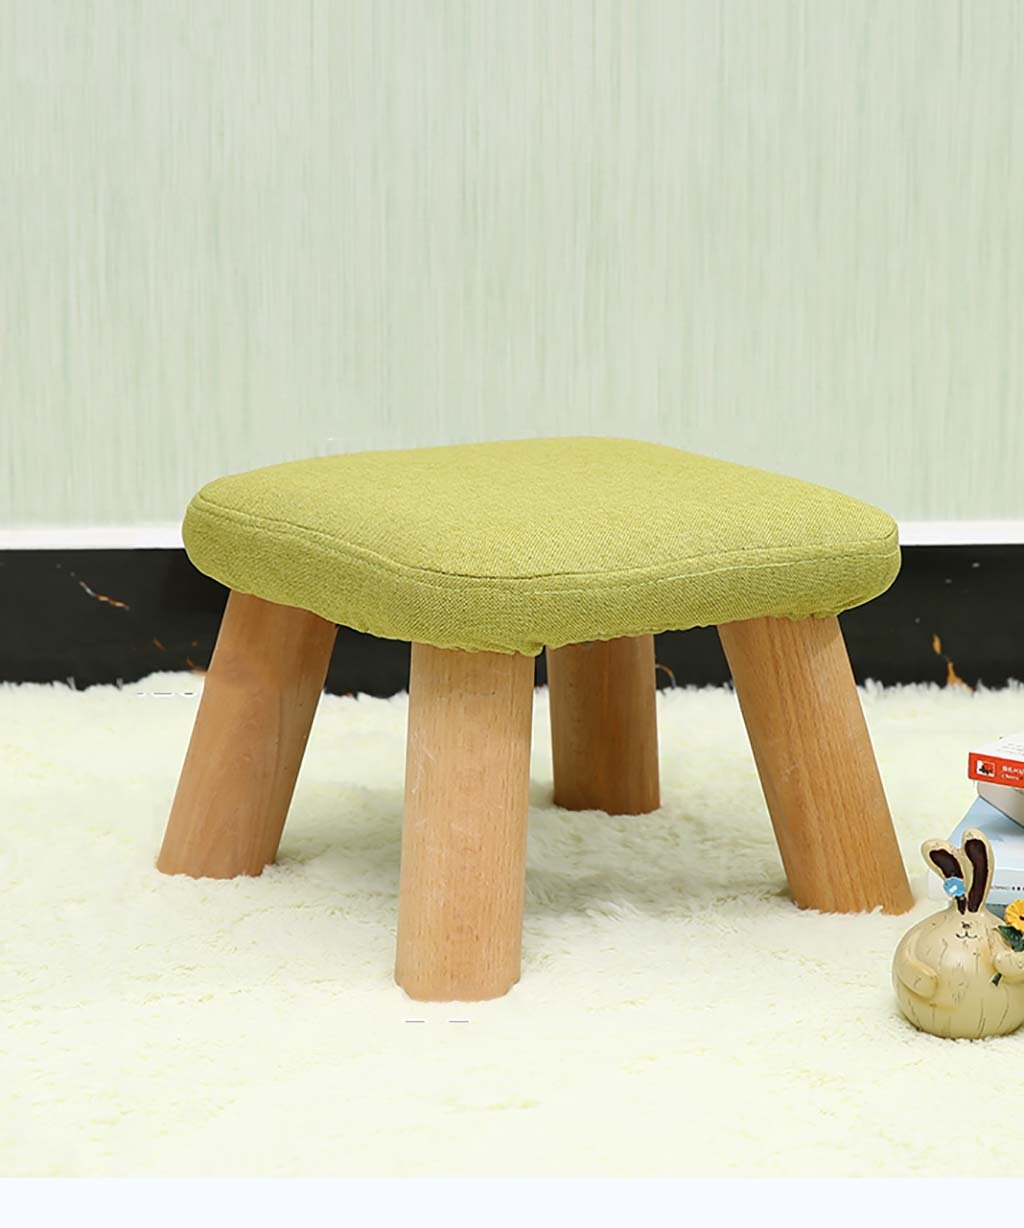 Green Footstools, Stool Square Wooden Footrest Padded Sofa Bench 4 Legs (color   Purple)